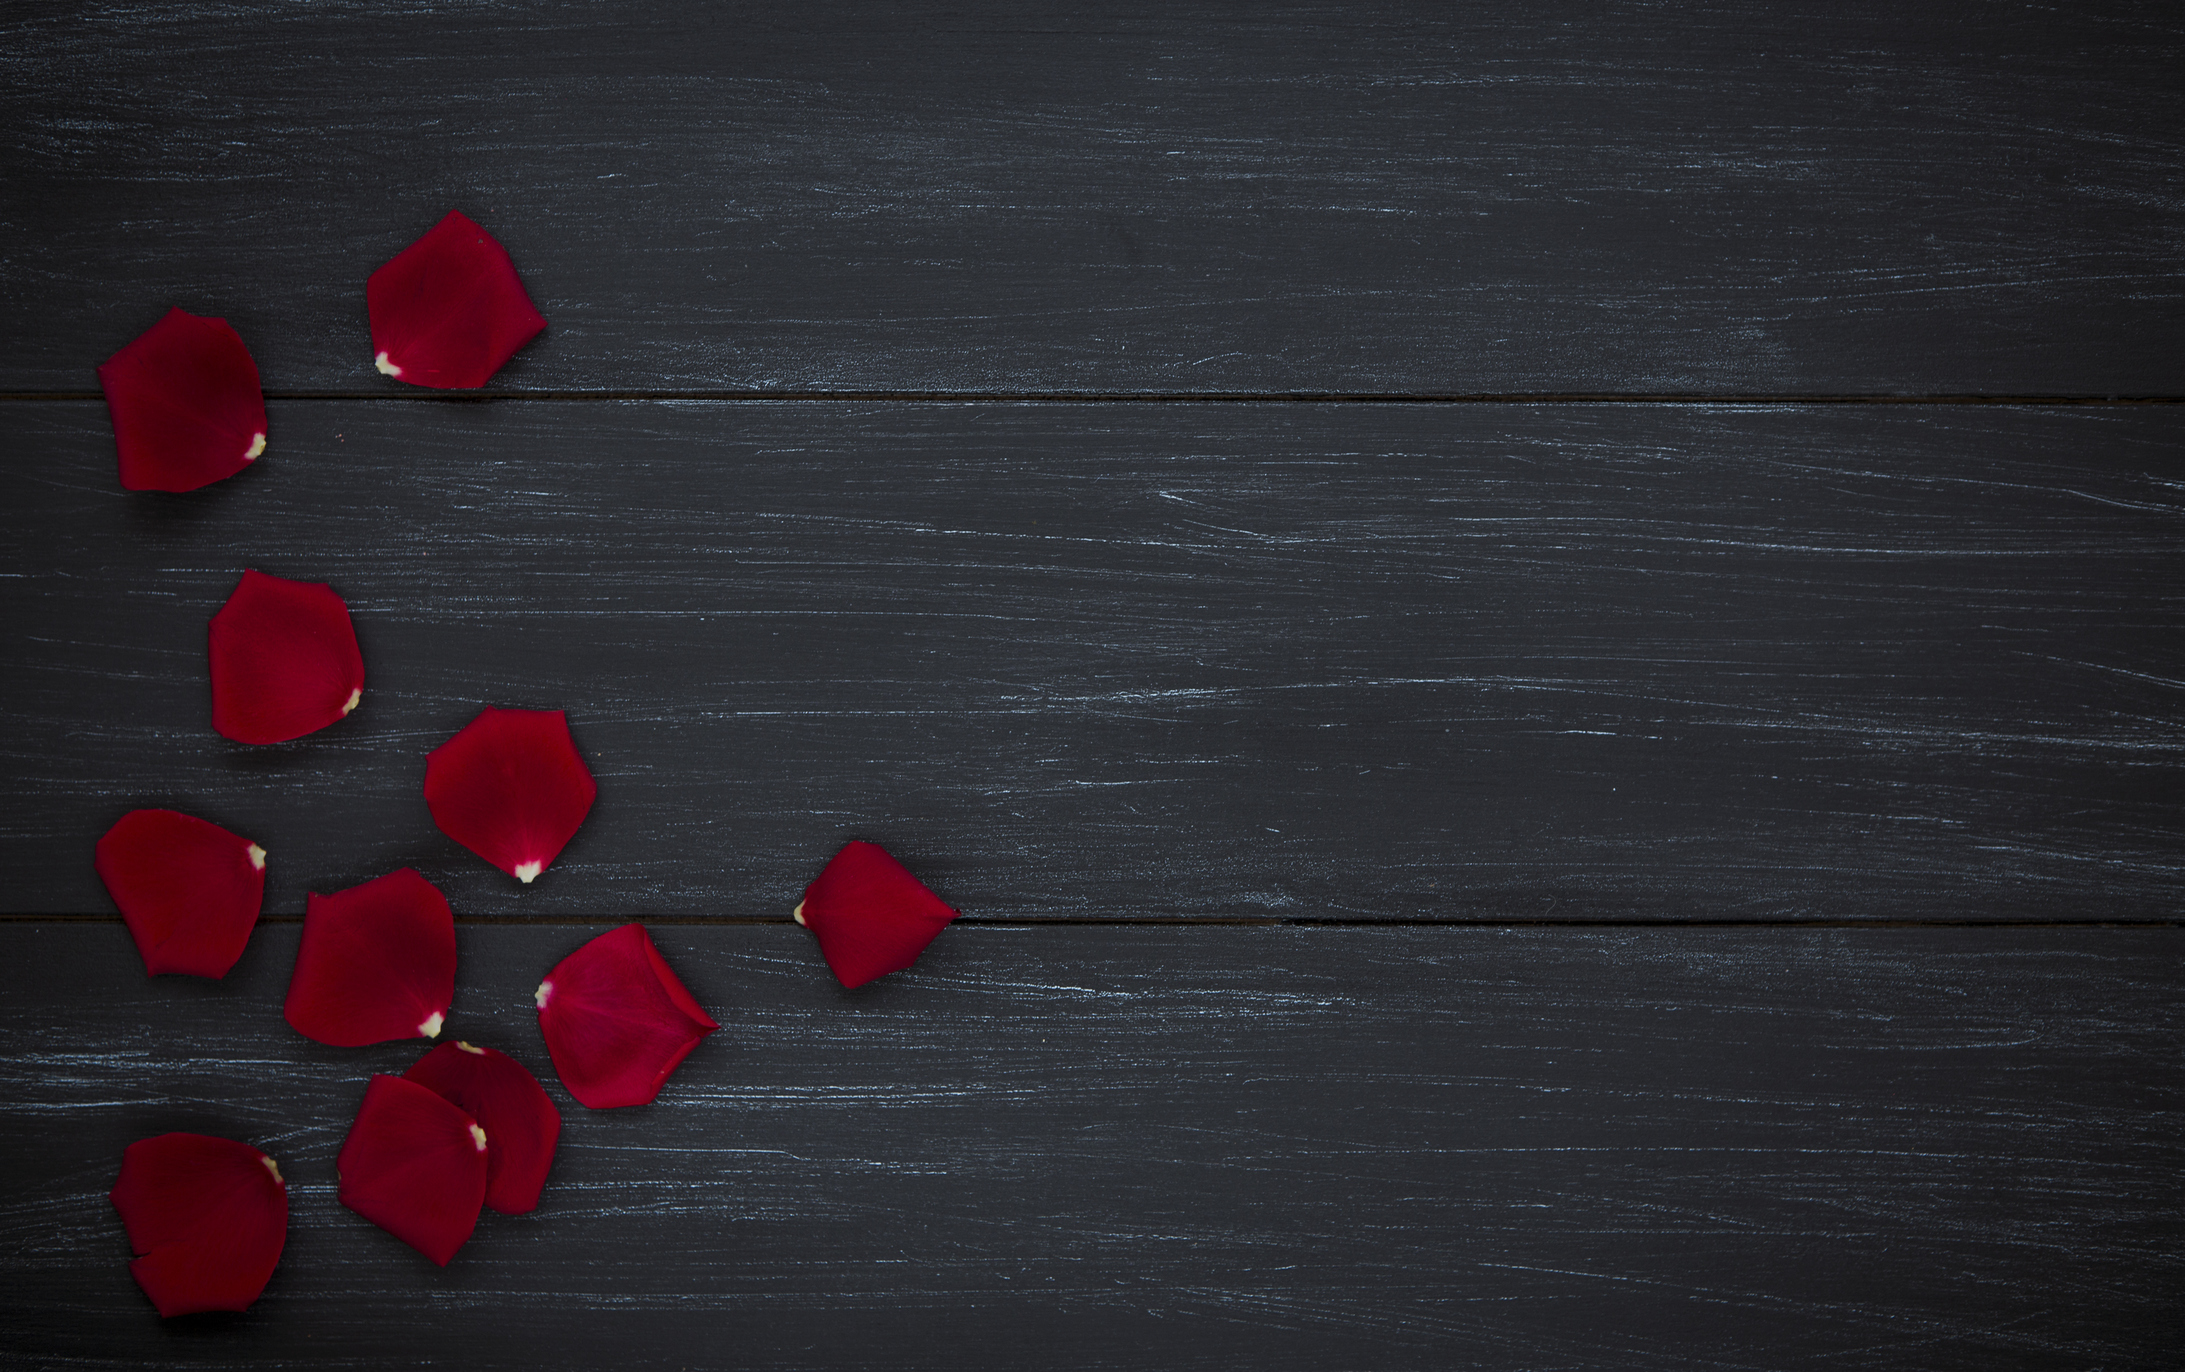 Red rose petals on wood